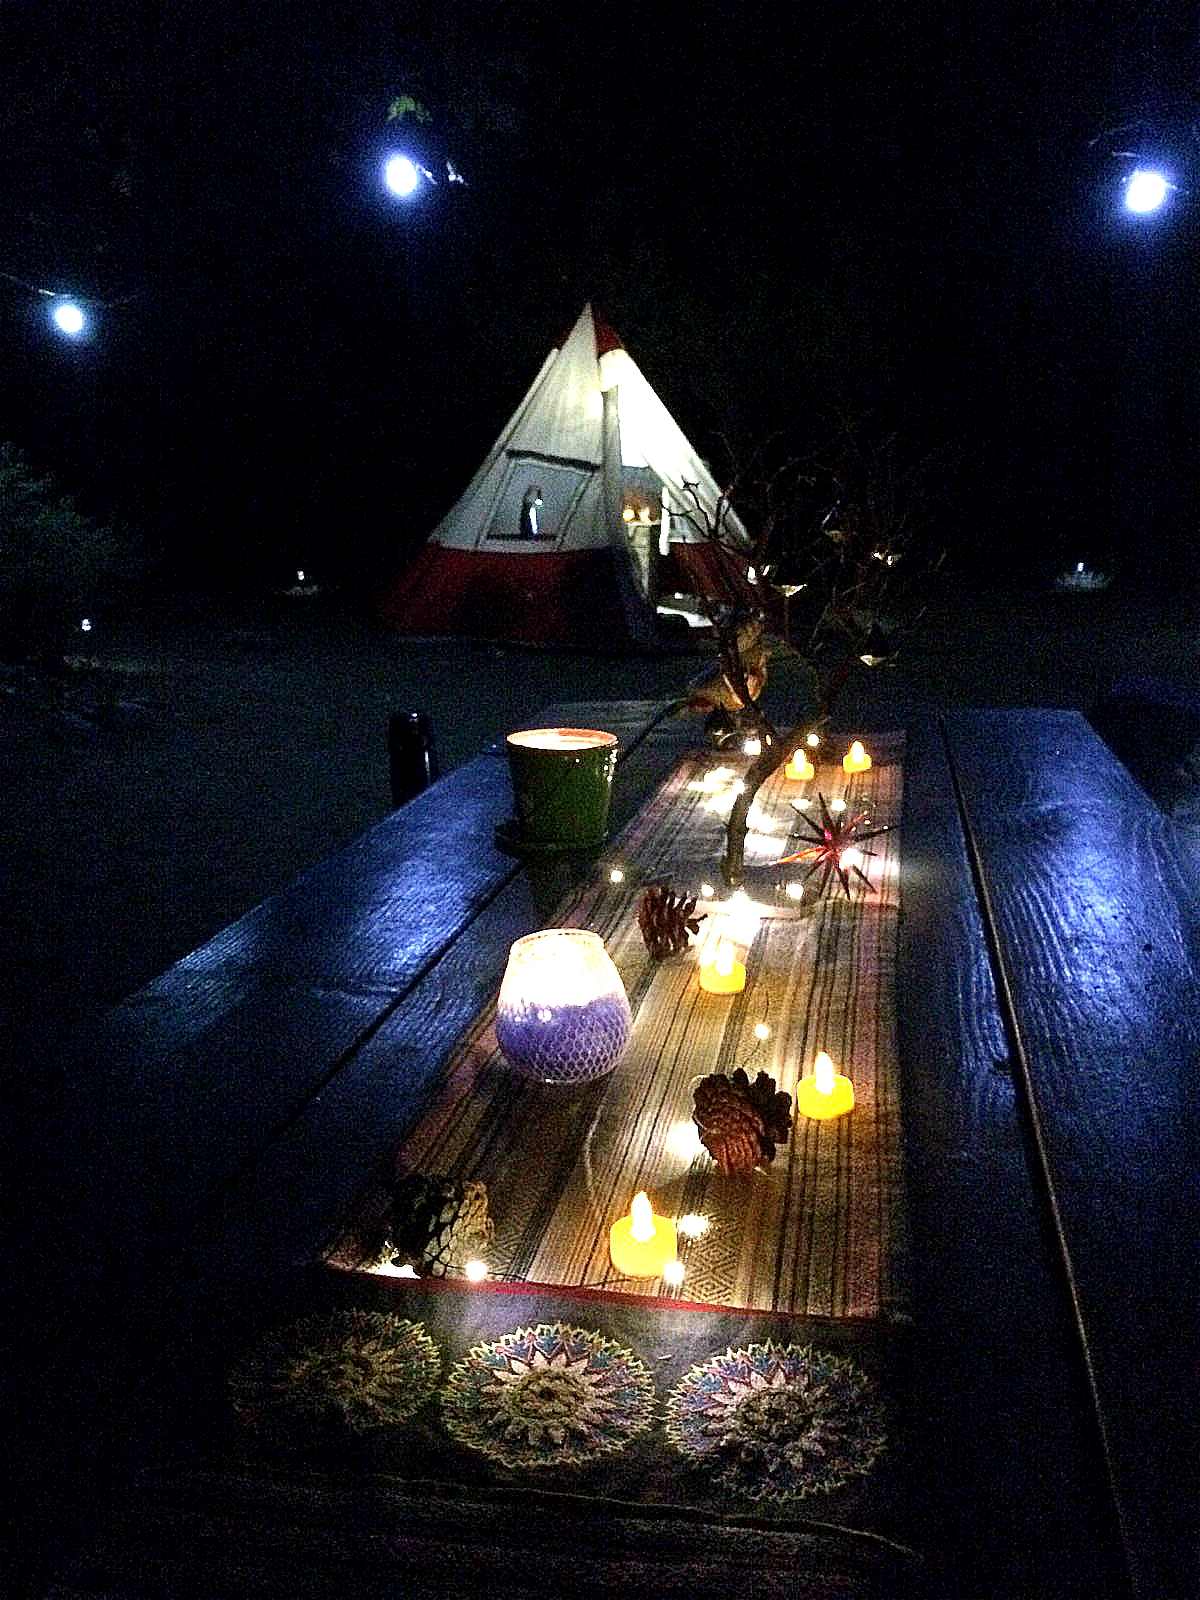 camping lighting, camping lighting ideas, camping lighting without electricity, outdoor camping lighting, best camping lighting, camping lighting equipment